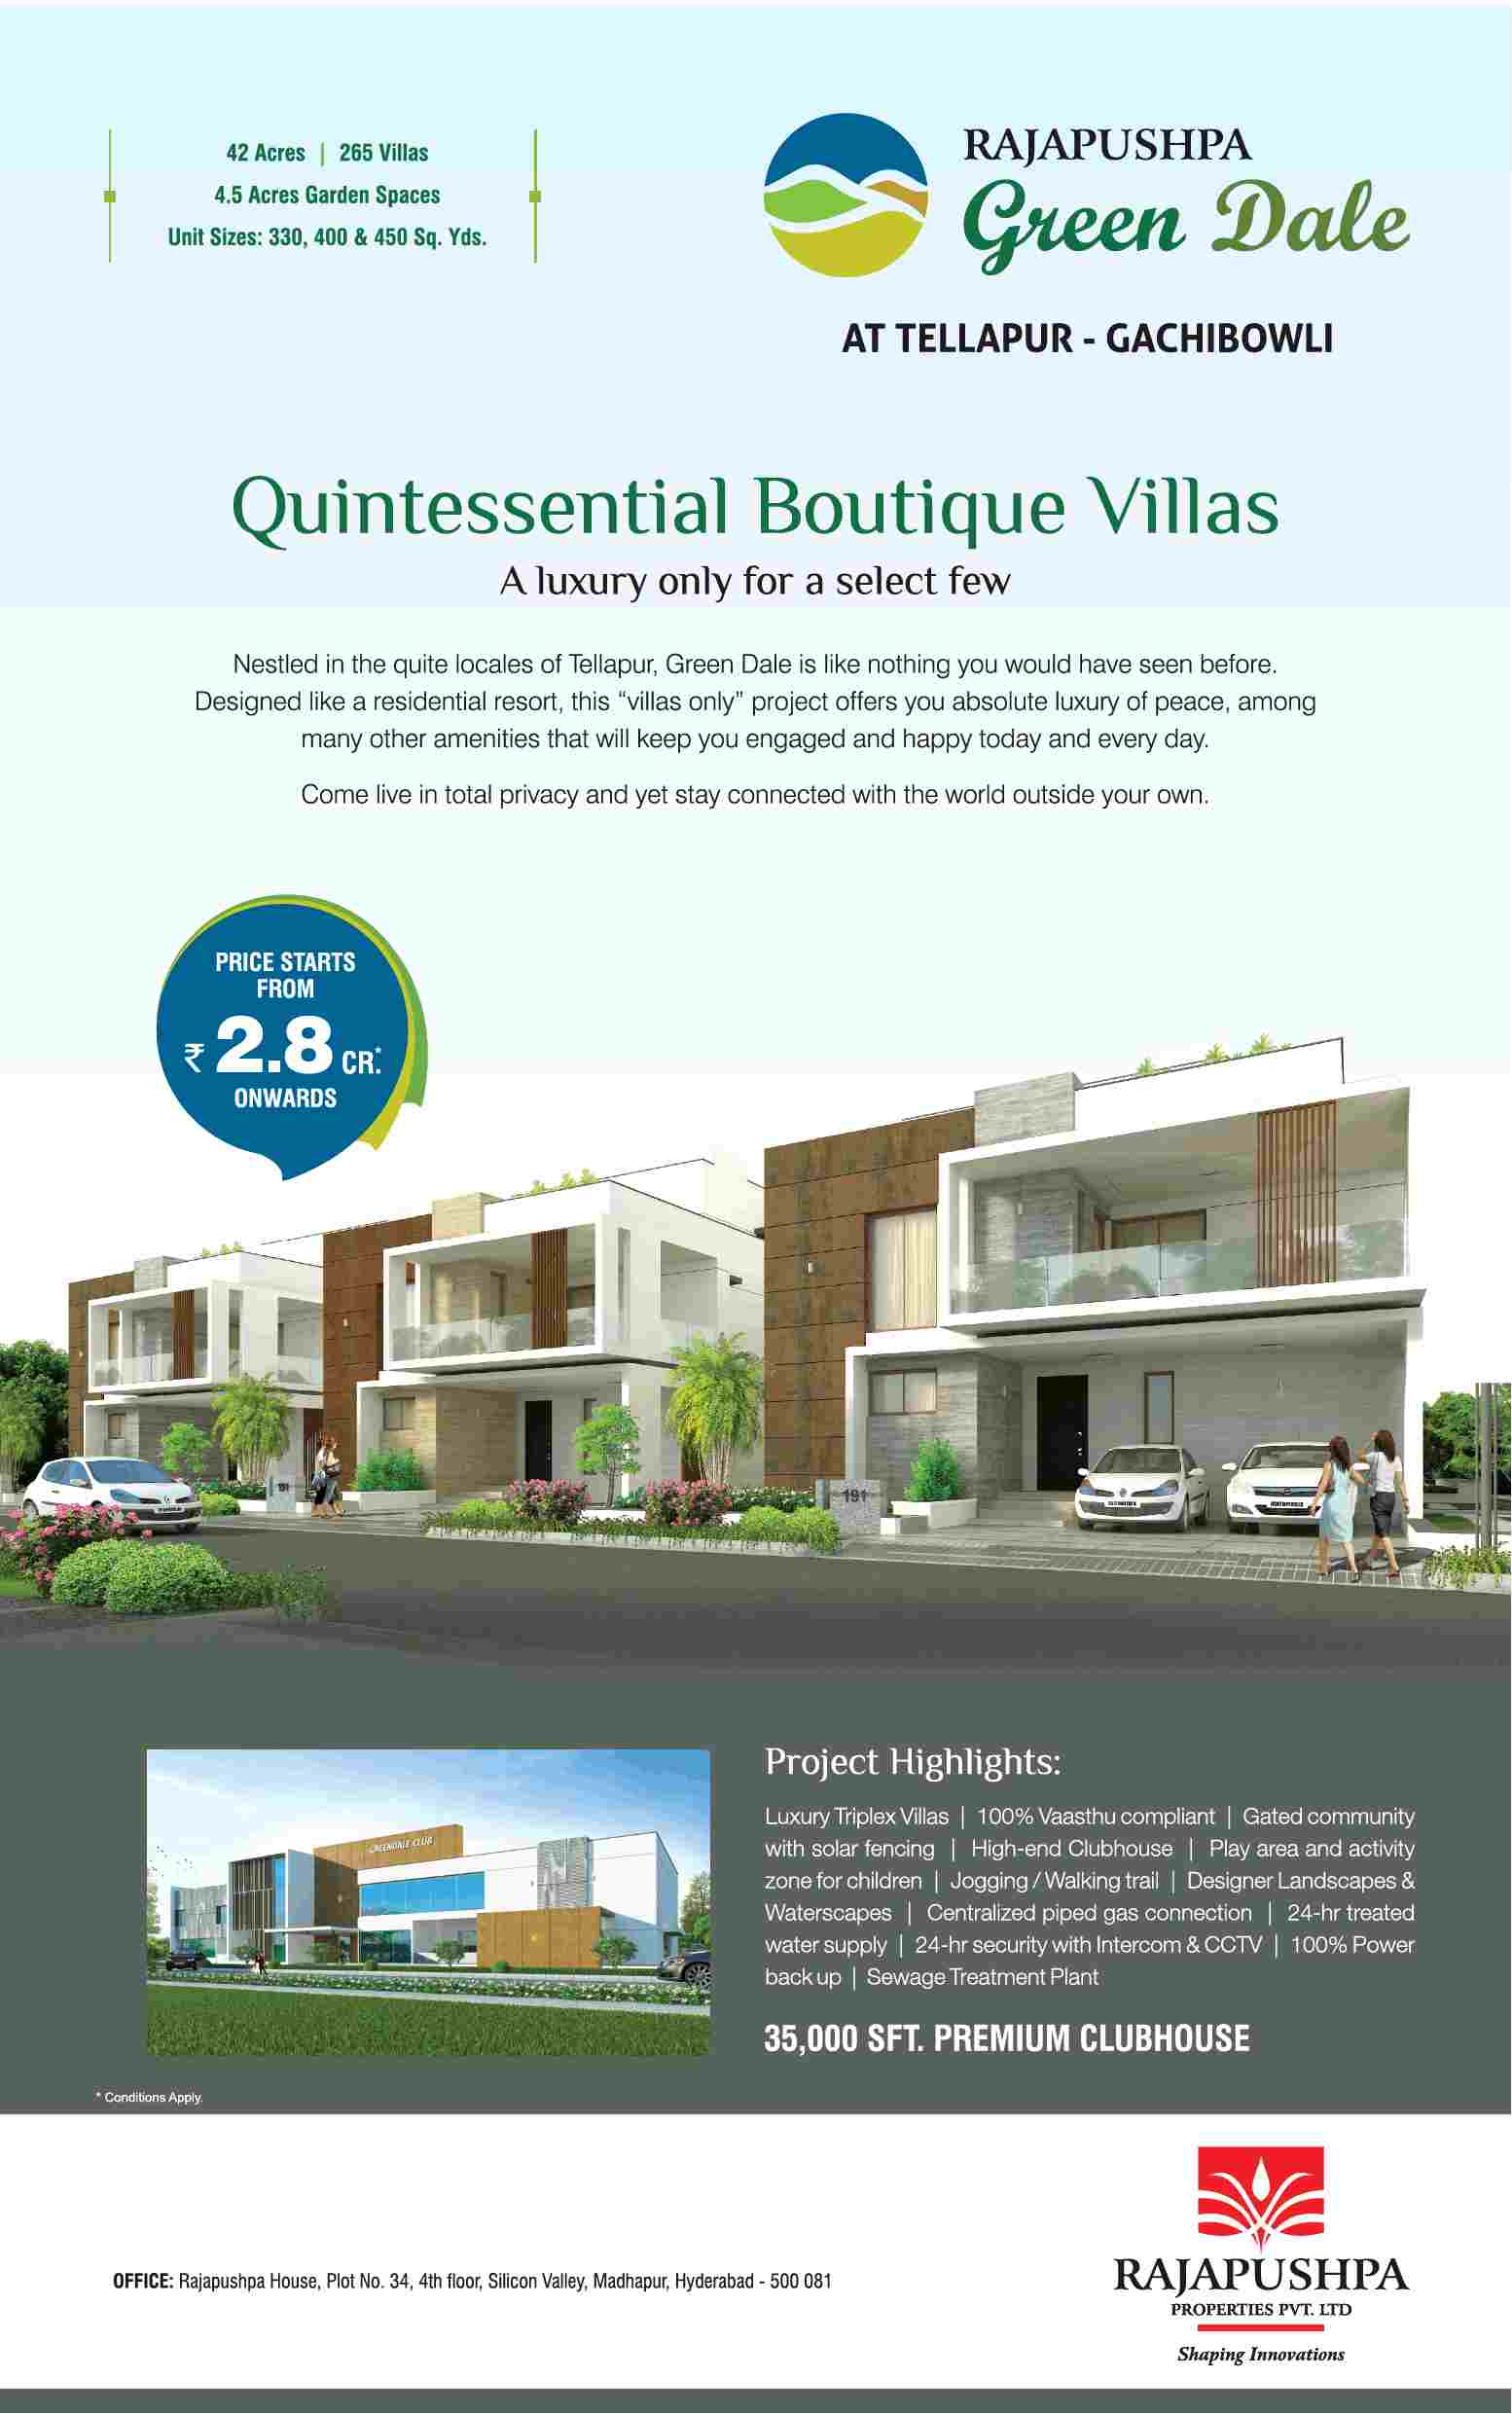 Reside in quintessential boutique villas at Rajapushpa Green dale in